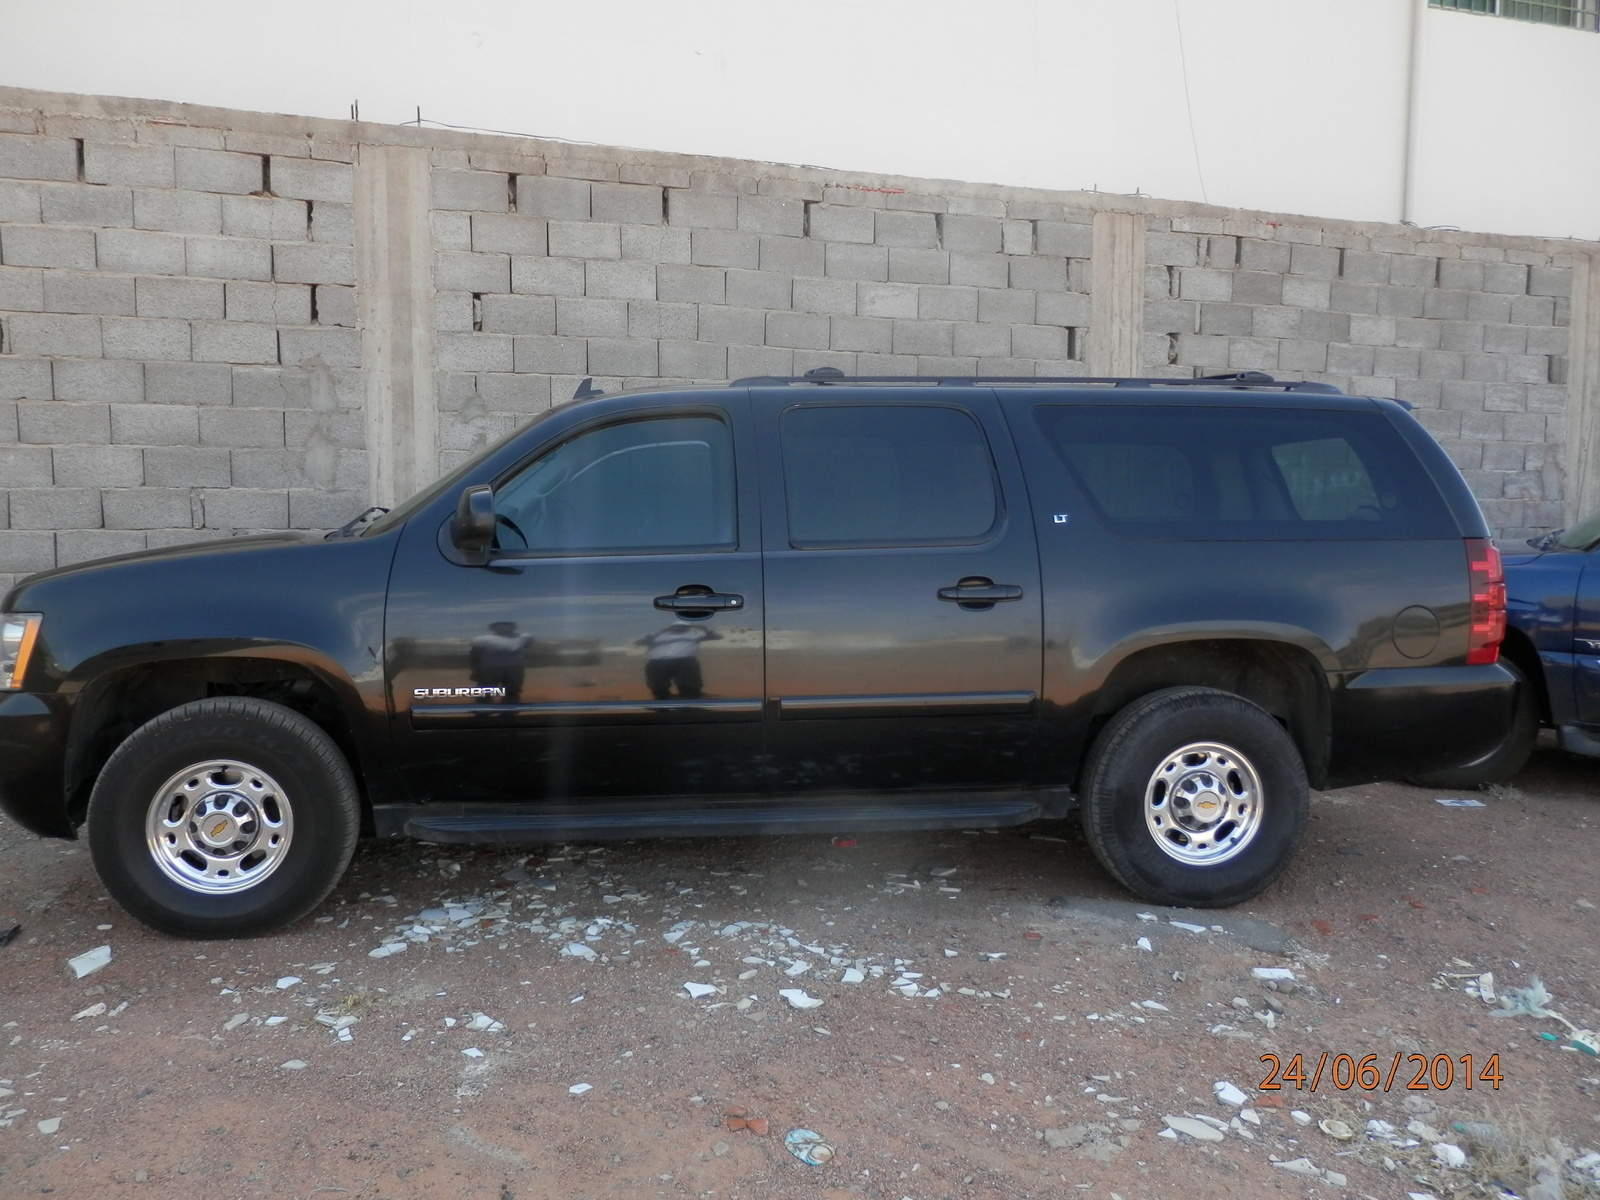 Chevrolet Suburban Questions Battery Dead In Morning If Terminals Remote Starter 2015 Shevi Autos Post Disconnected Night Before No Problem Starting Even After A Week 2007